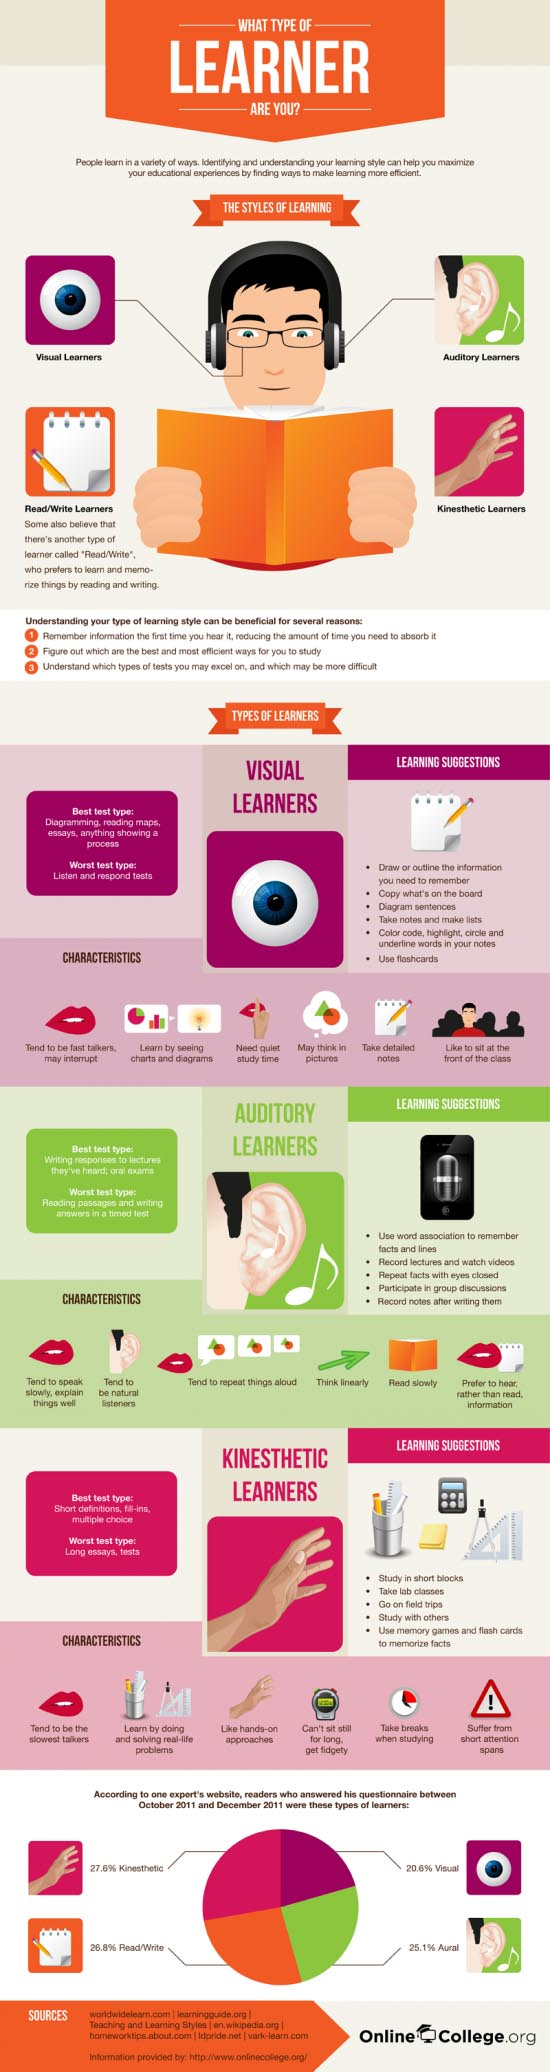 Learning Styles: Know Yours and Your Audience's! infographic